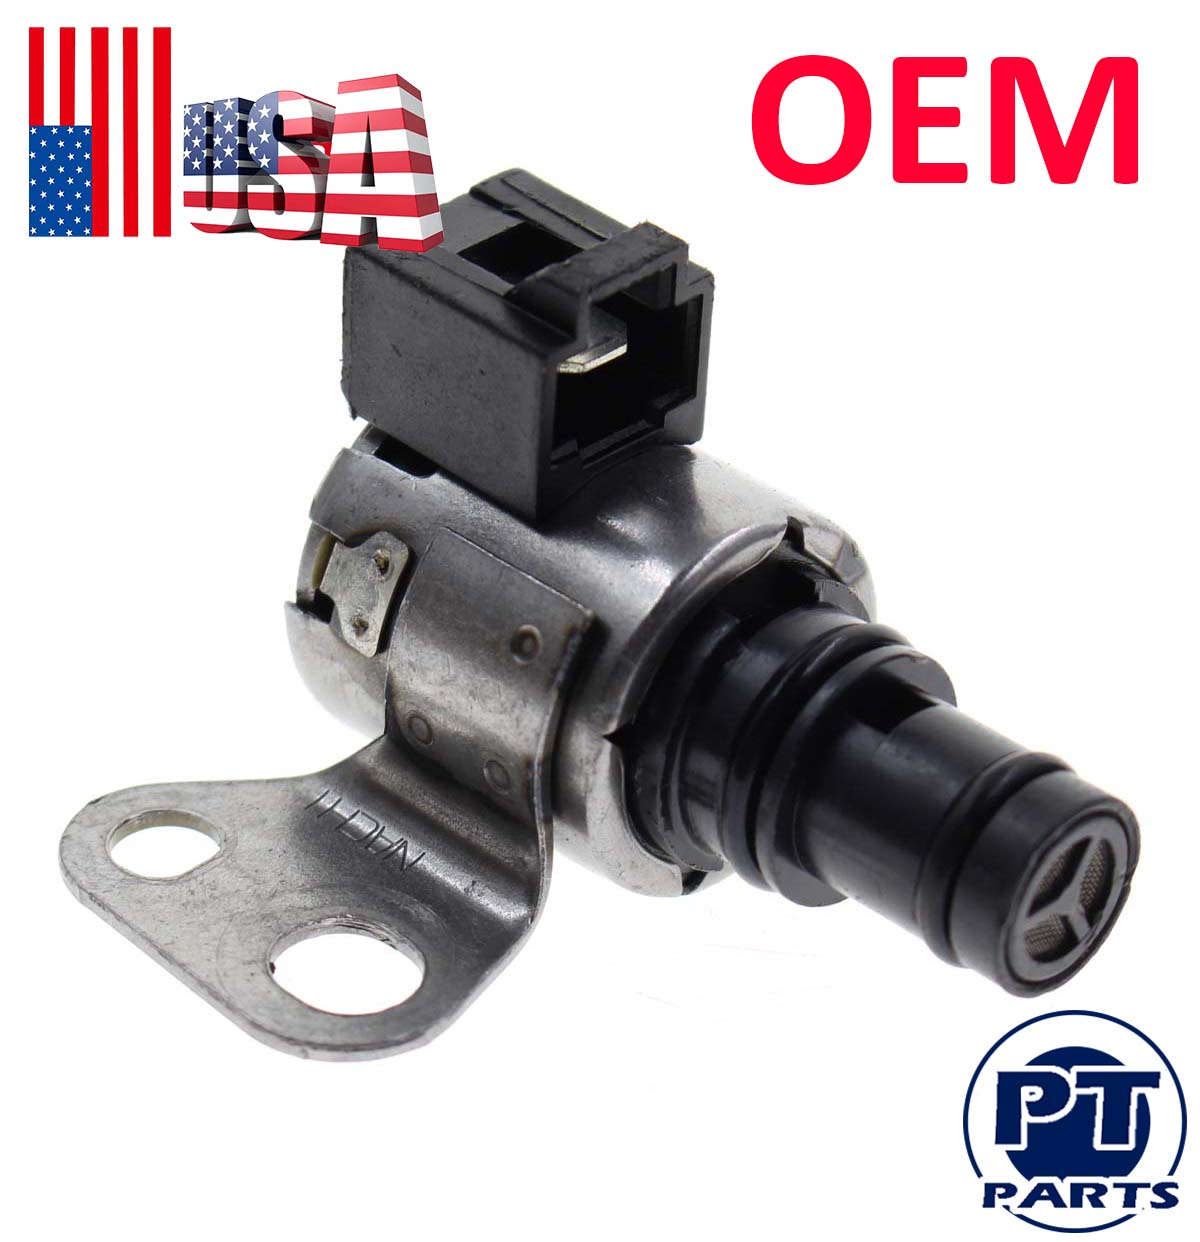 Details about OEM Transmission Solenoid Assembly Fits Toyota Lexus IS300  GS300 GS430 LS400